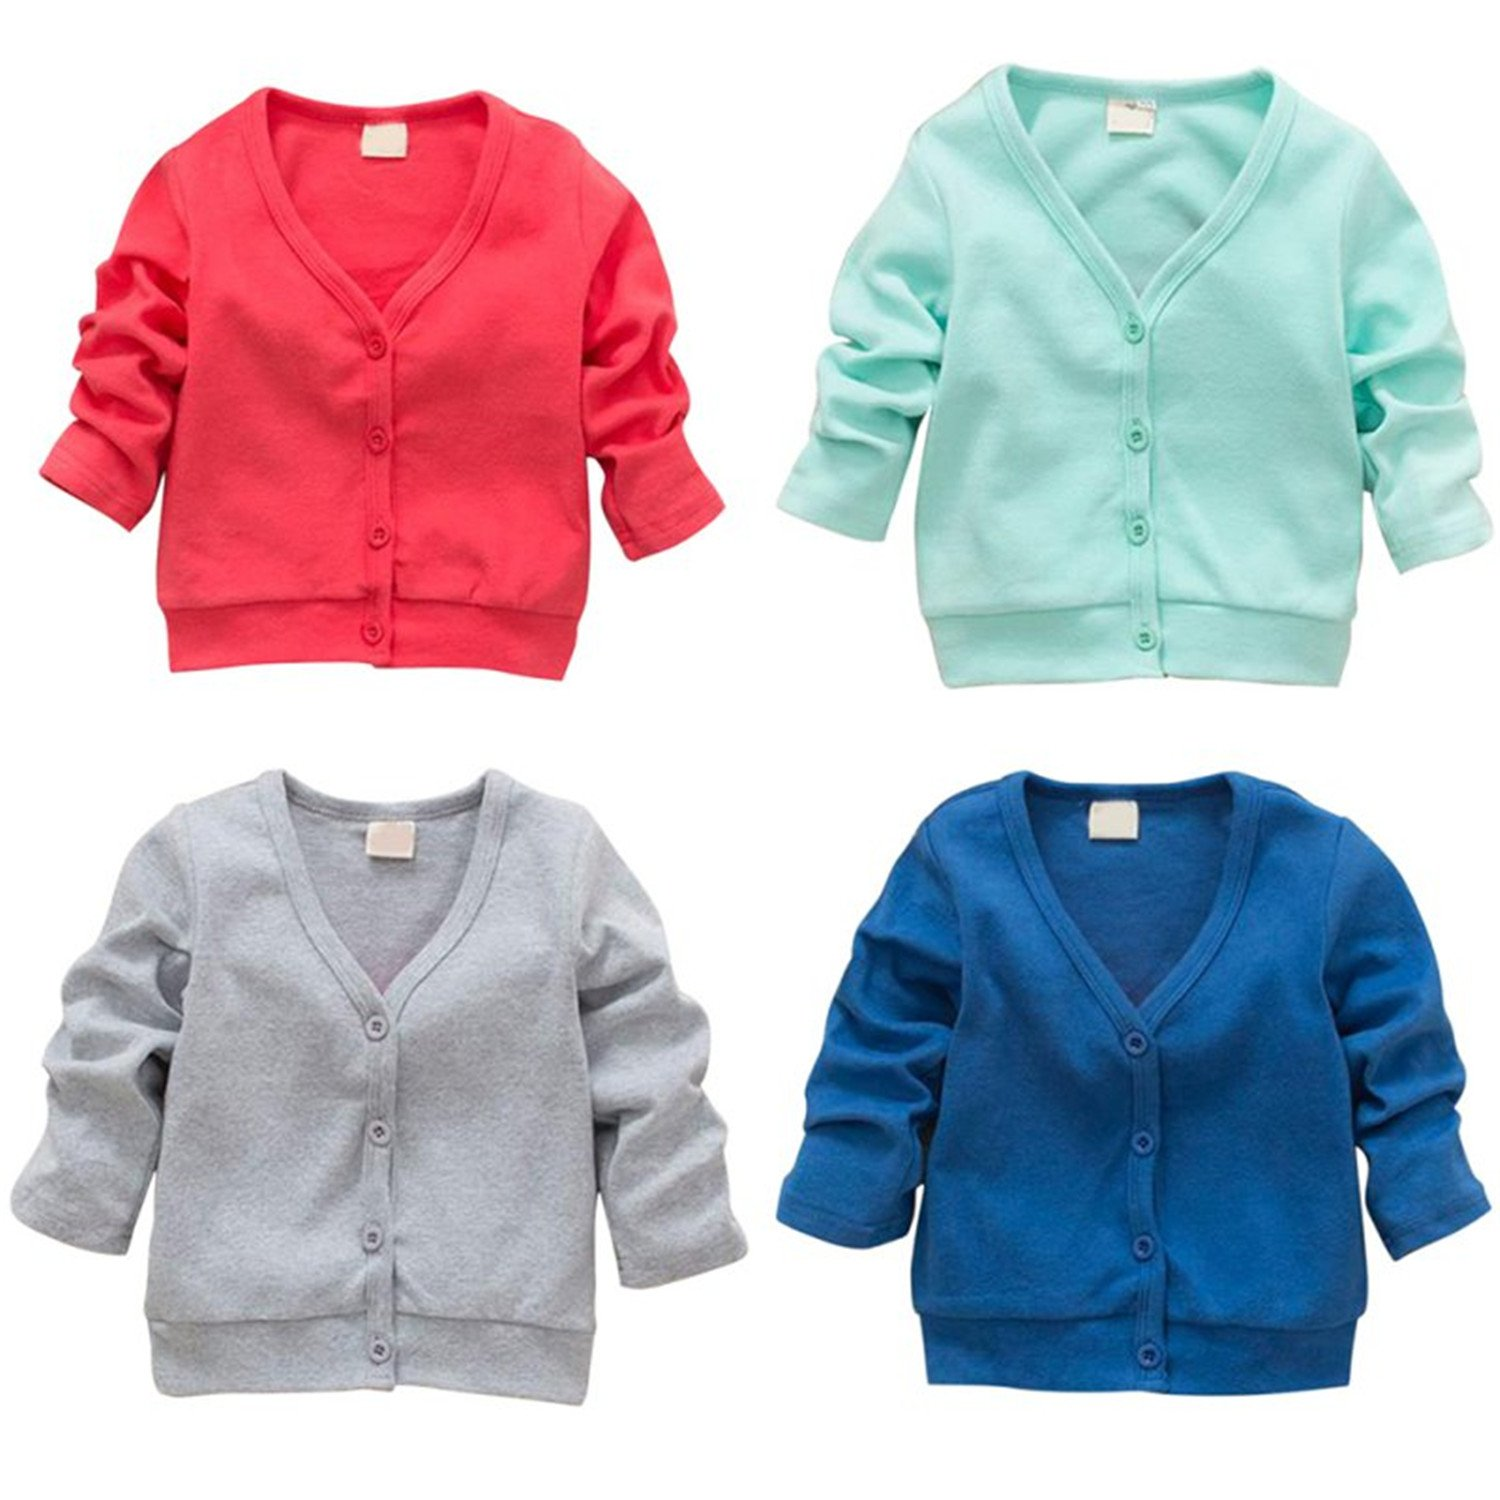 ddc93b5de Amazon.com  Terryws Hot Sales 0-3Y Baby Kid Clothing V-Neck Cardigan ...